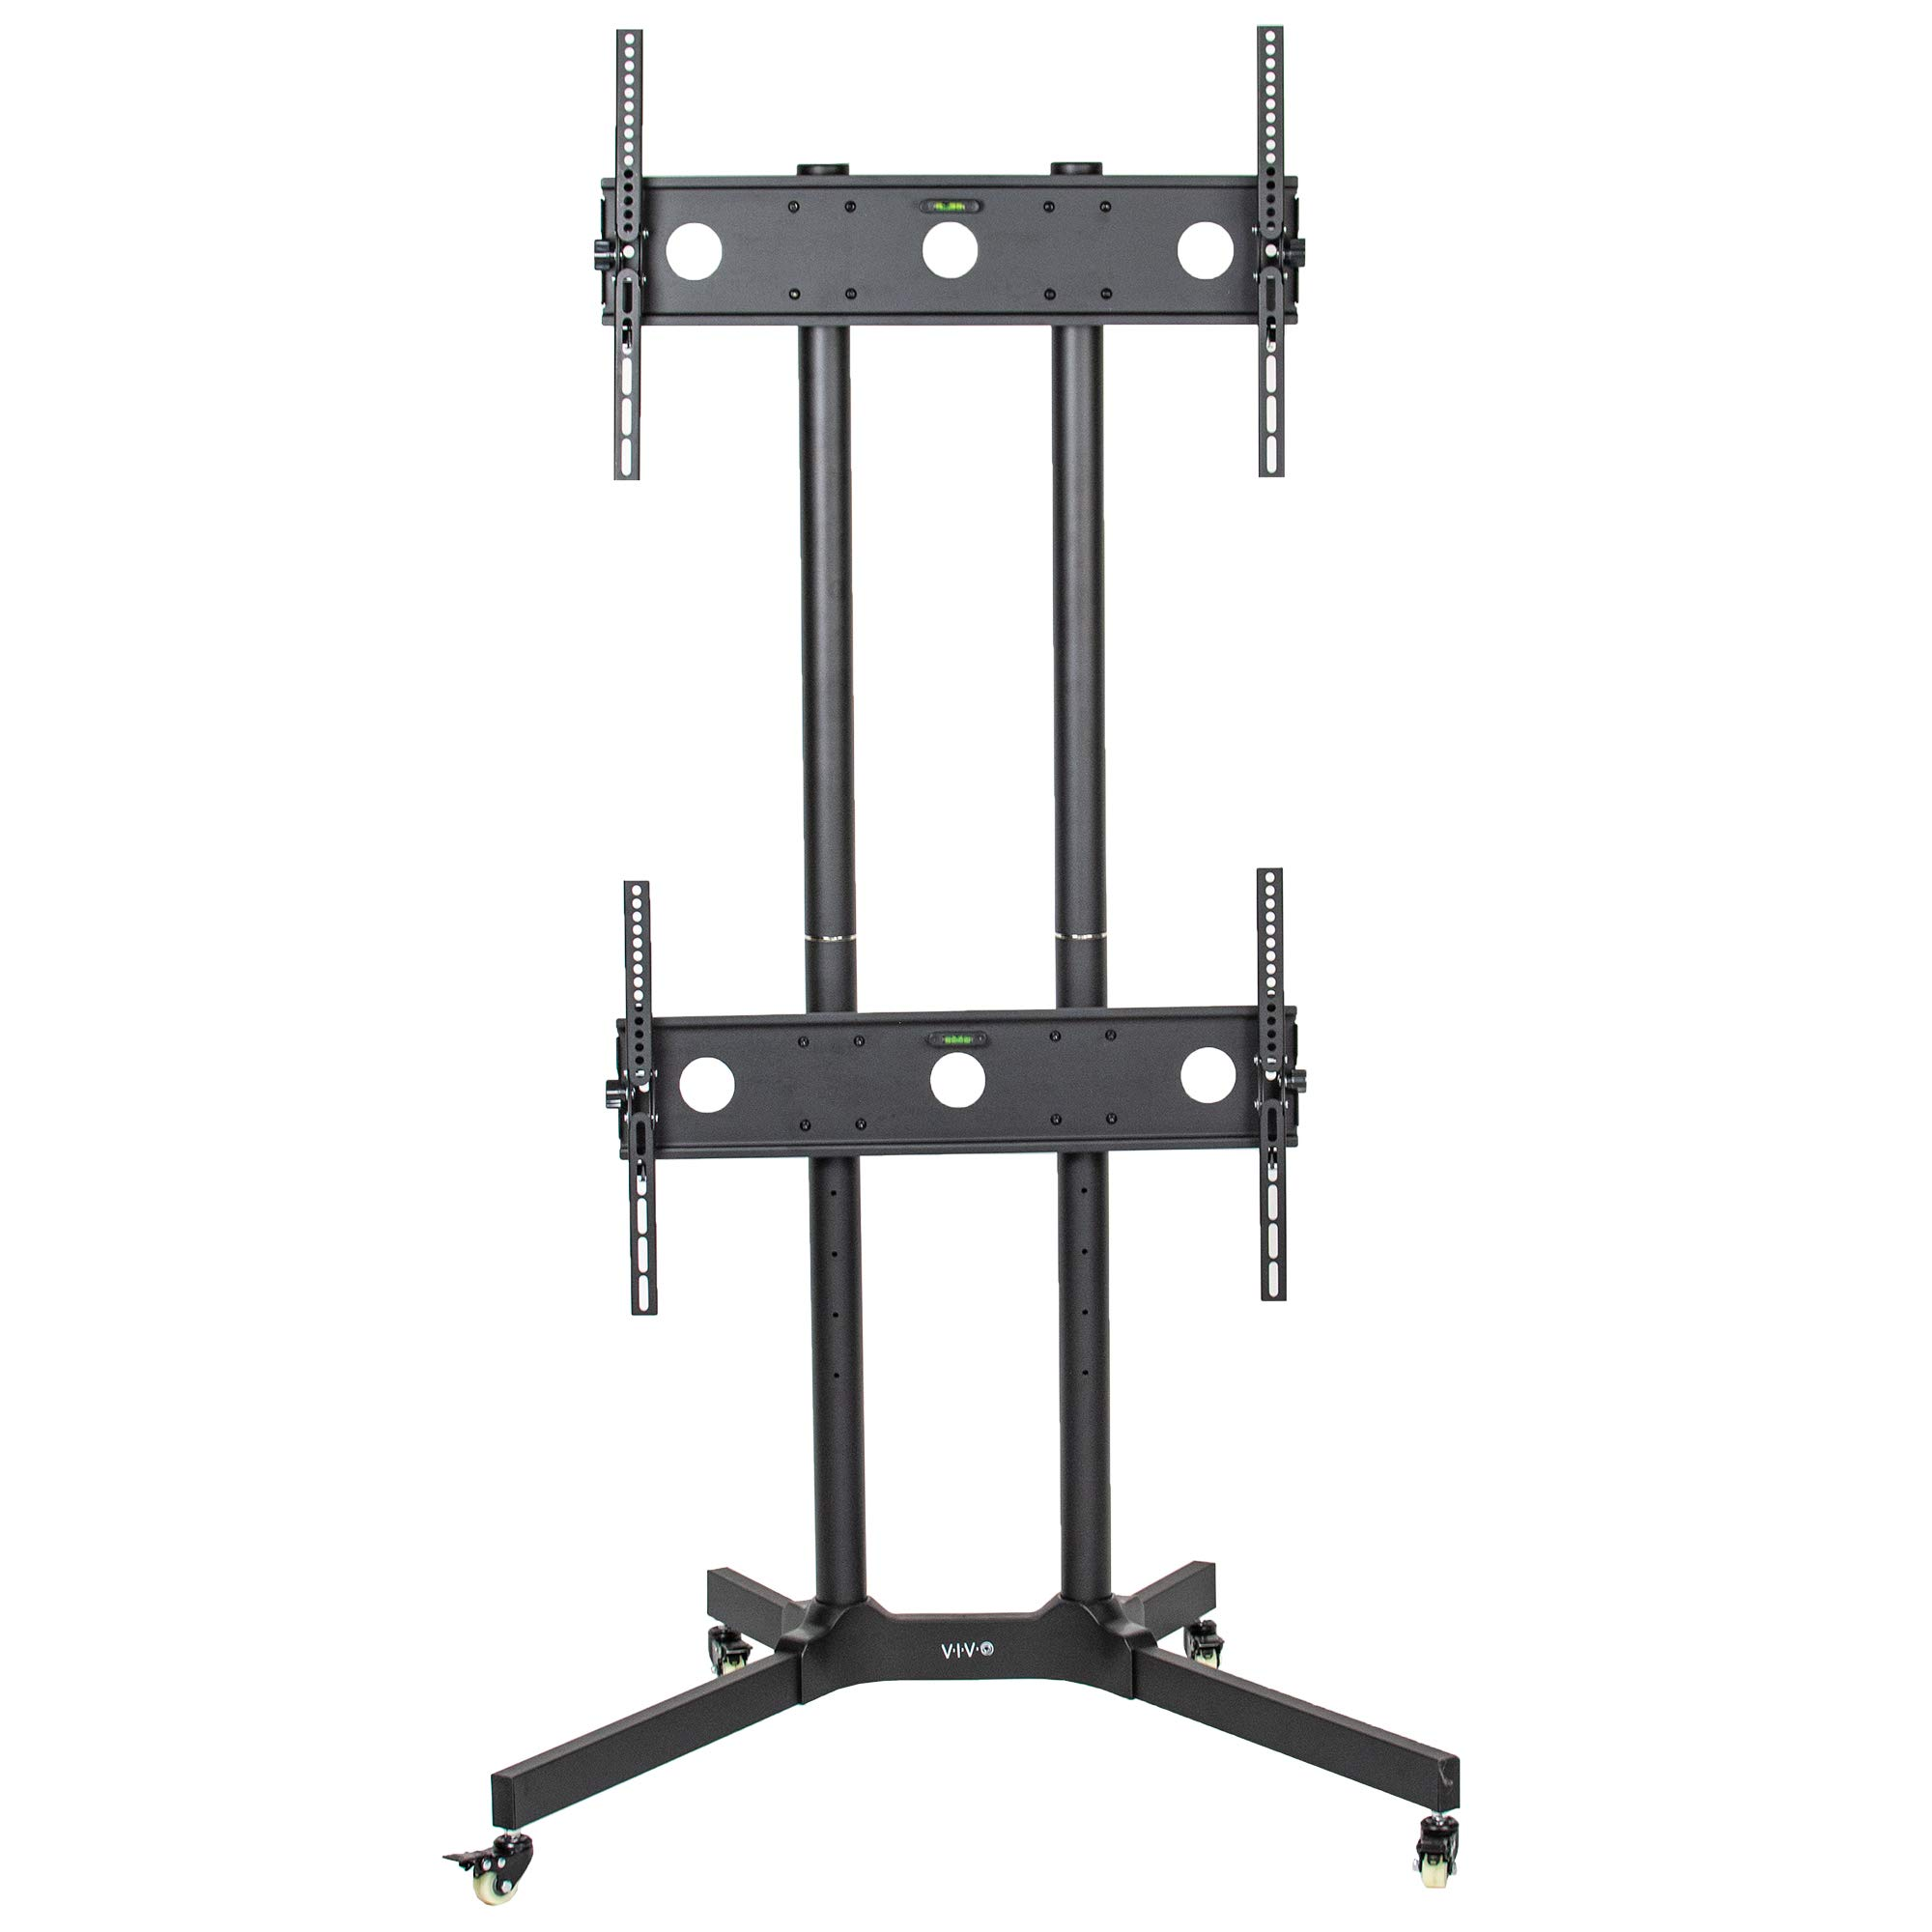 VIVO Black Rolling Dual Screen TV Cart for 32 to 65 inch LCD LED Plasma Flat Panel Screens | 2 Screen Mobile Stand with Wheels (STAND-KIT-TV03E) by VIVO